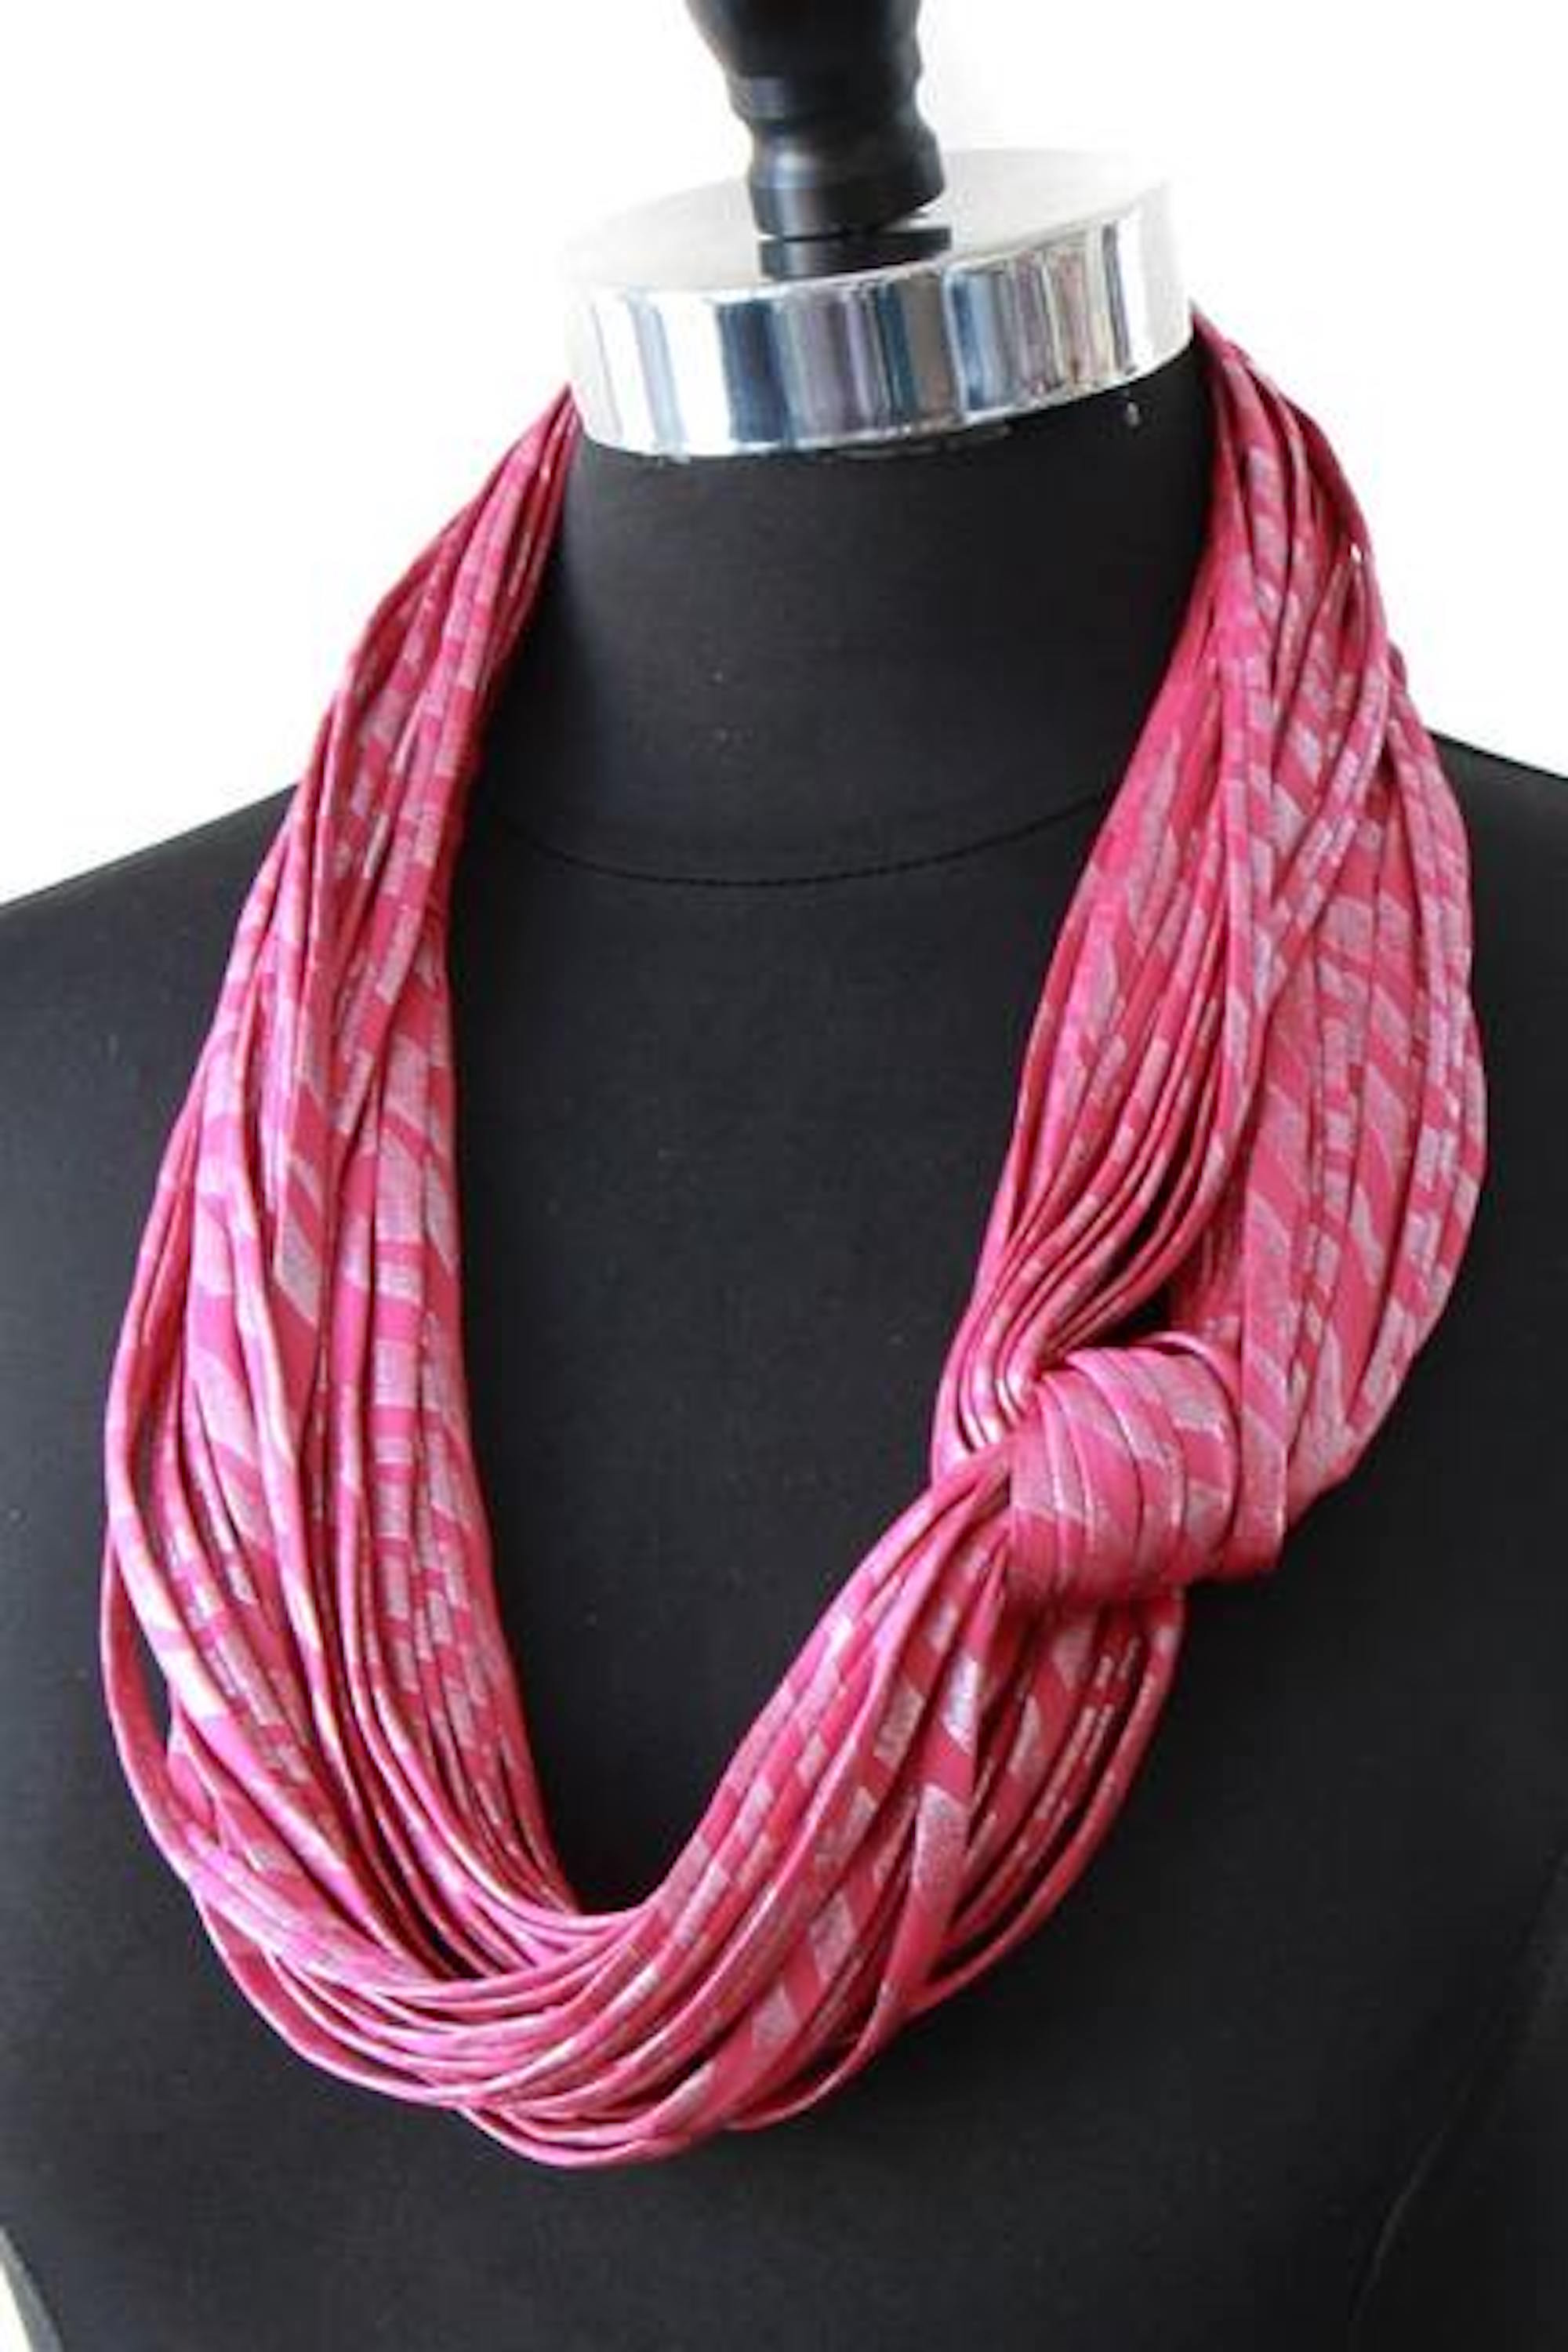 Pink_and_Metallic_Silver_Infinity_Scarf_for_Women-9_grande.jpg